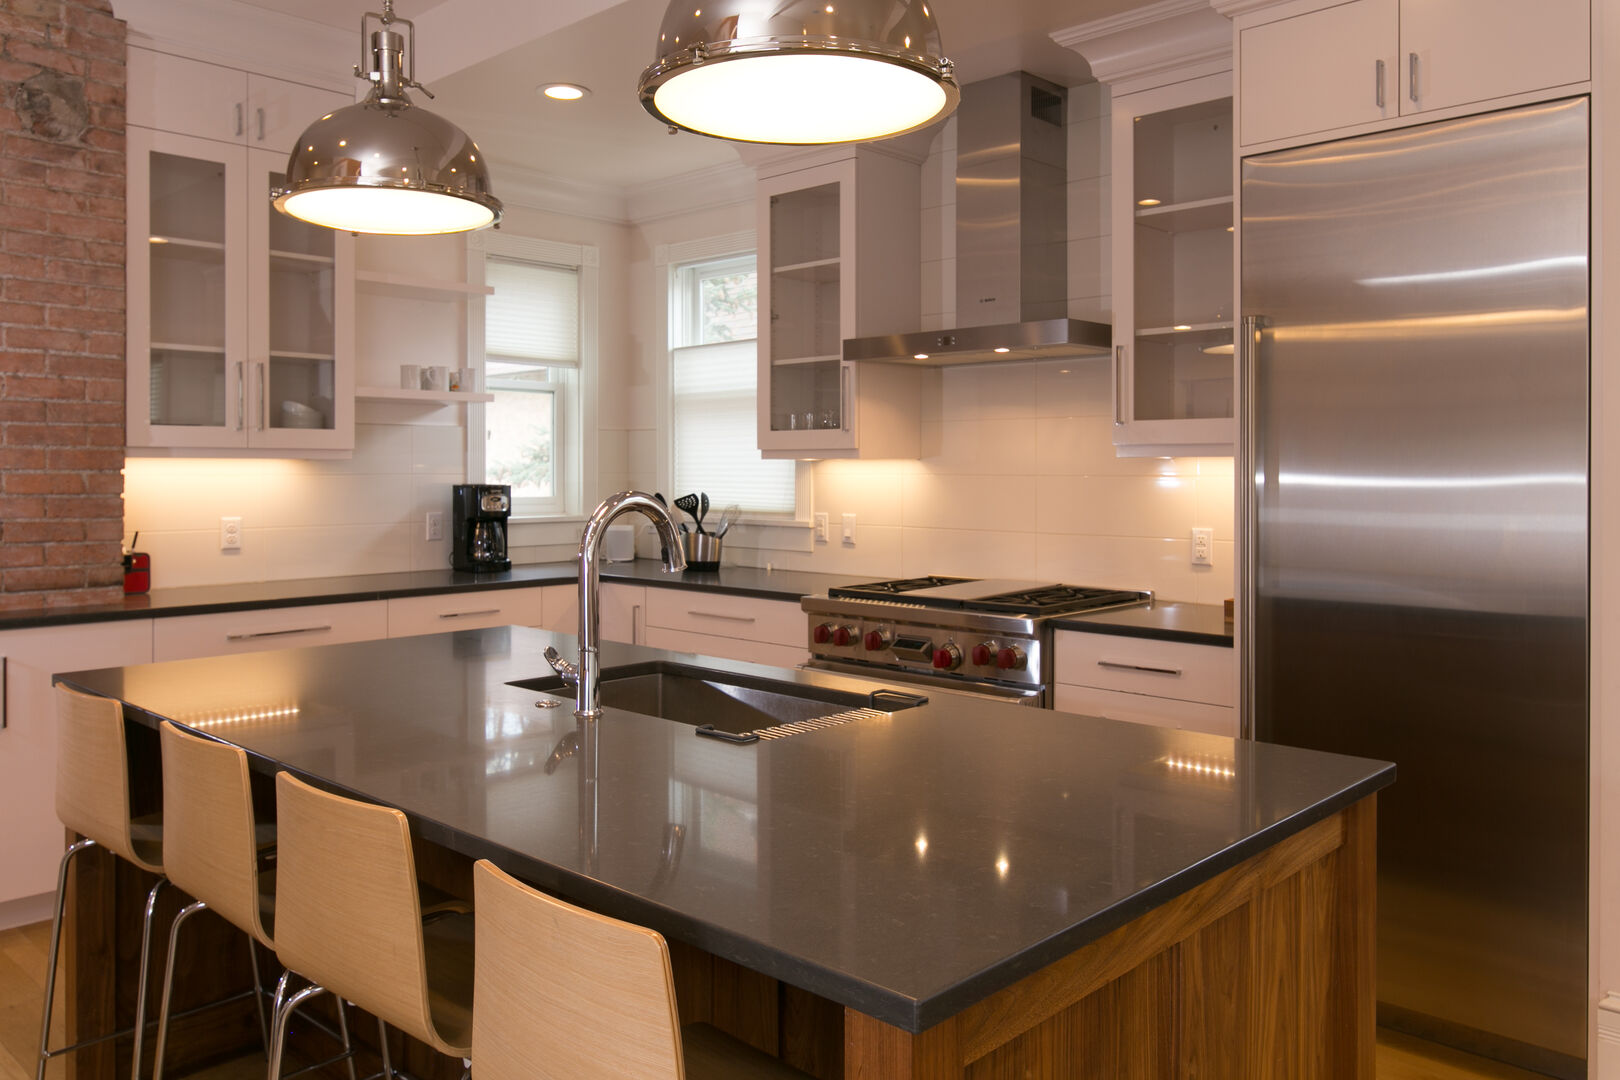 Gourmet Cook? Your kitchen dreams start here!